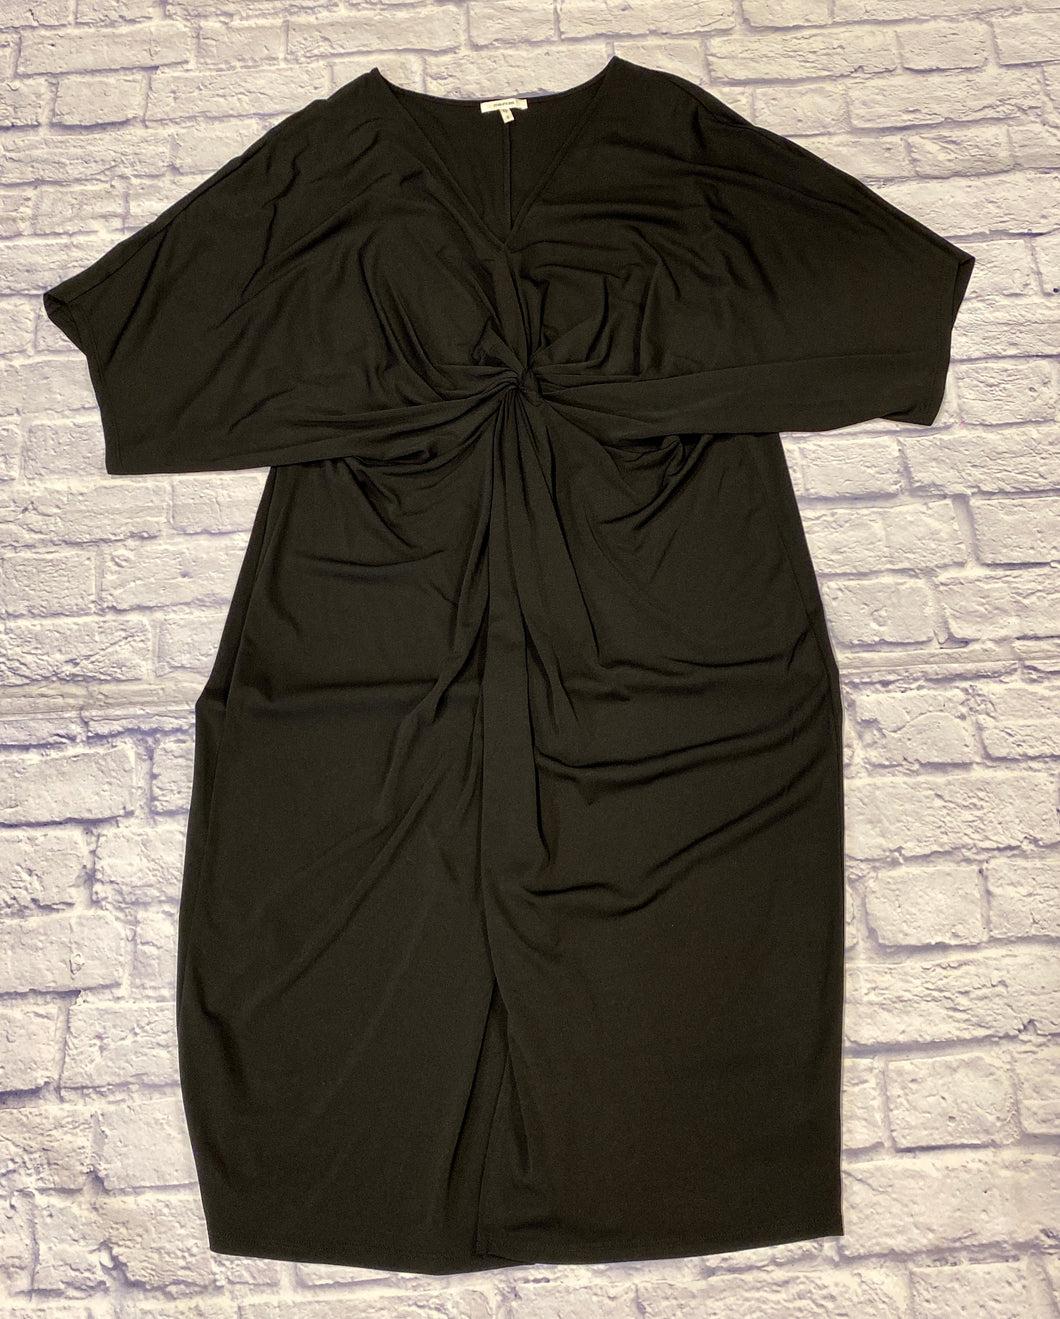 Maurices black stretch dress with v neck into knotted front.  Very flattering.  Straight through hip.  Like new.